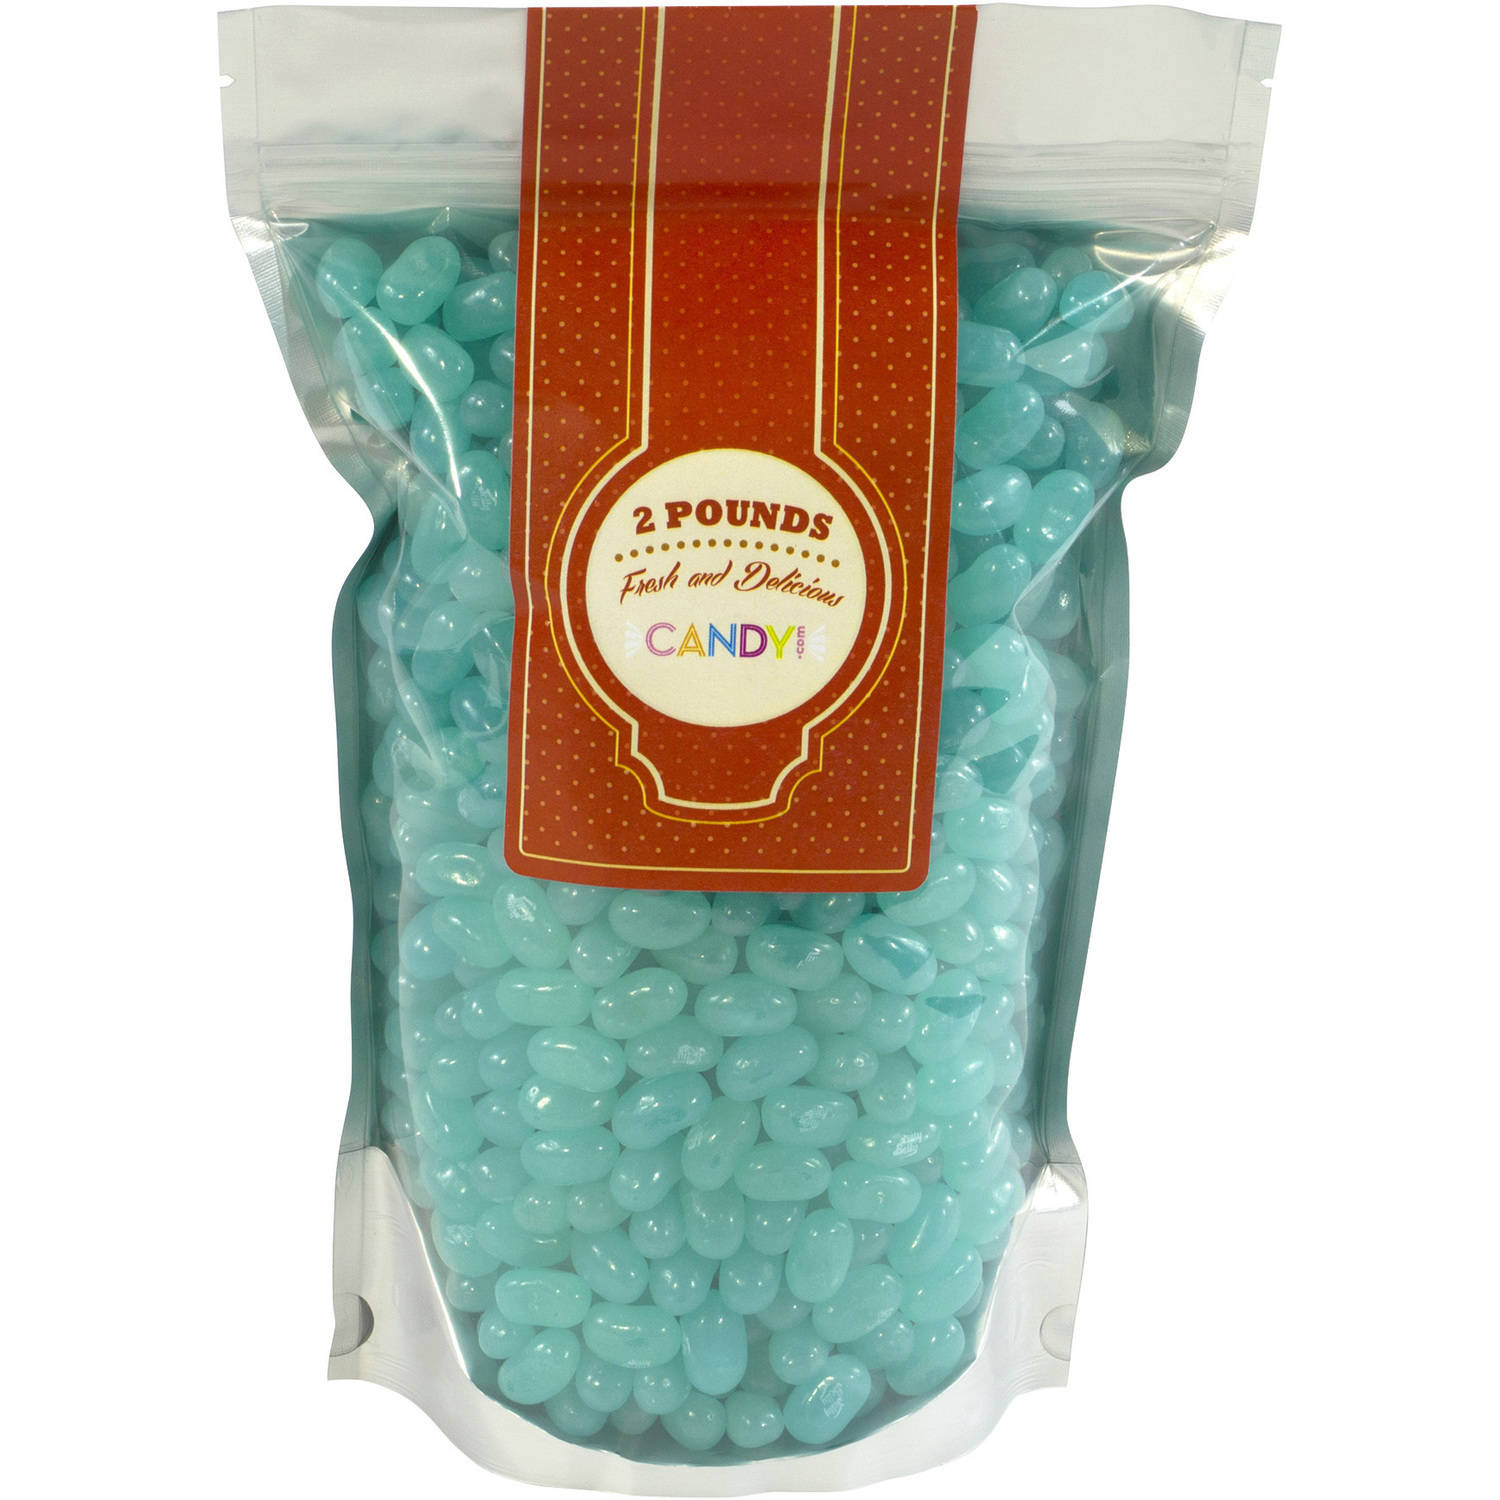 Jelly Belly Berry Blue Jelly Beans, 2 lbs by Jelly Belly